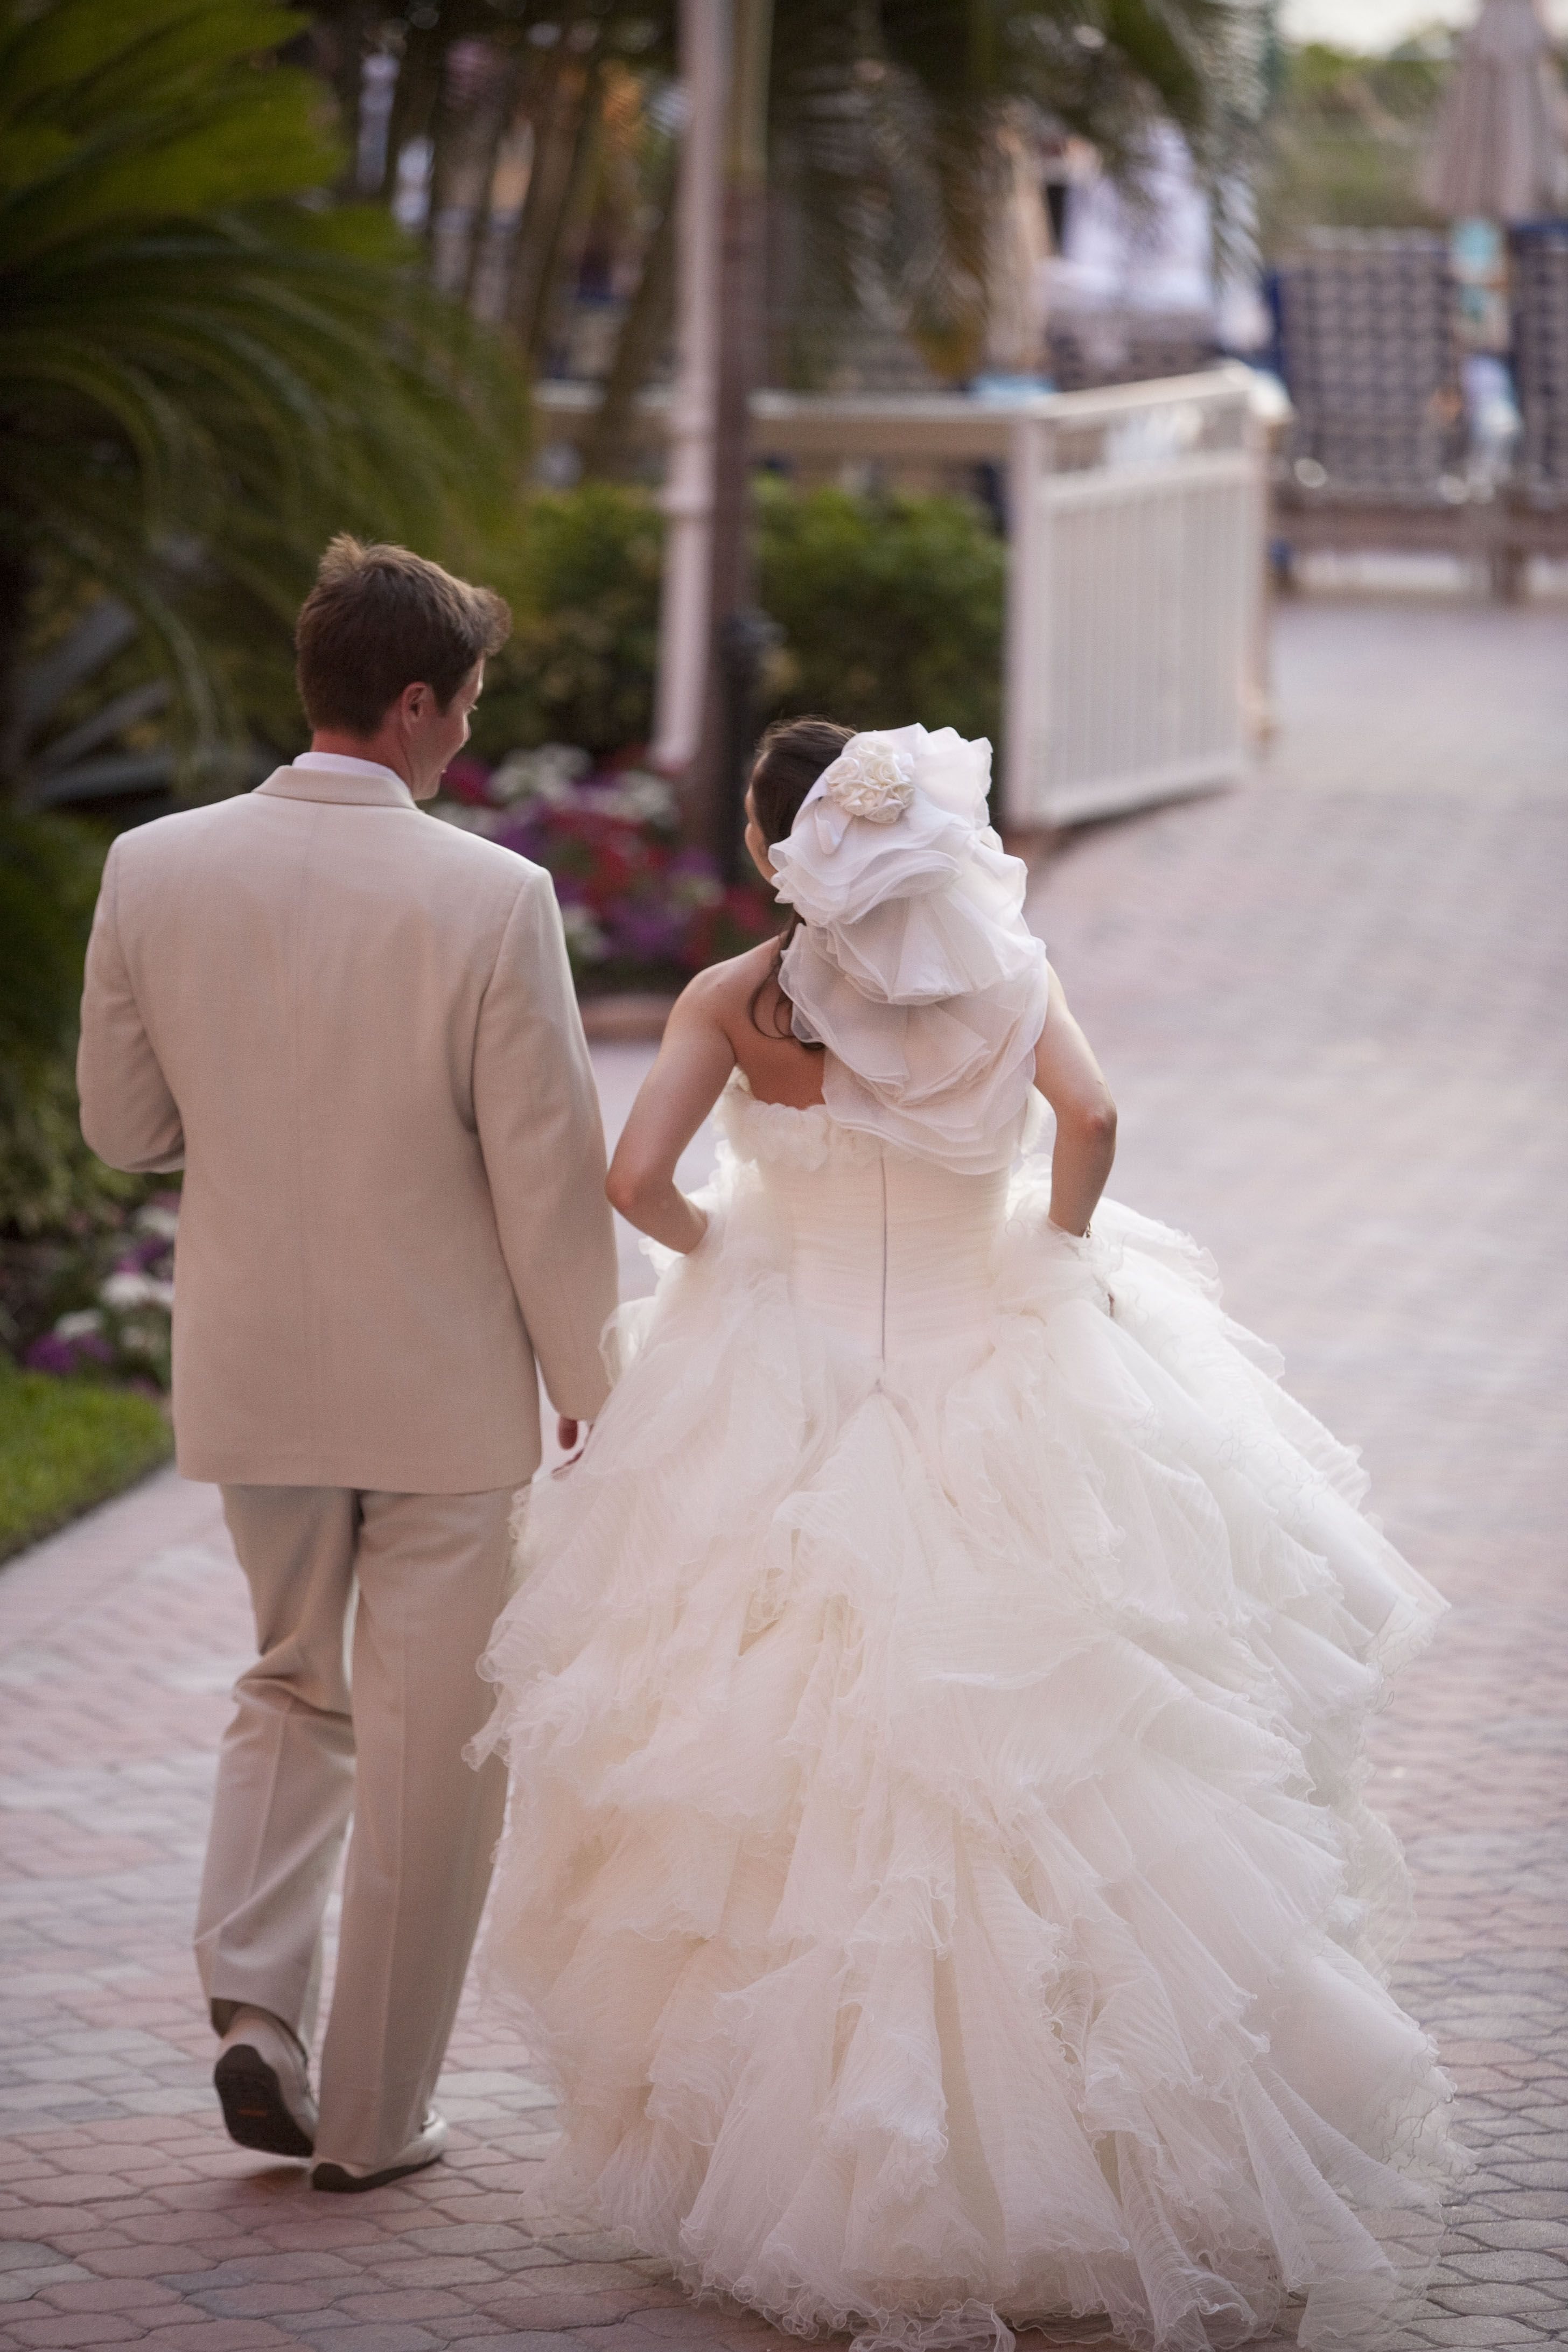 Layered bustle added to romantic theme of wedding highlights of